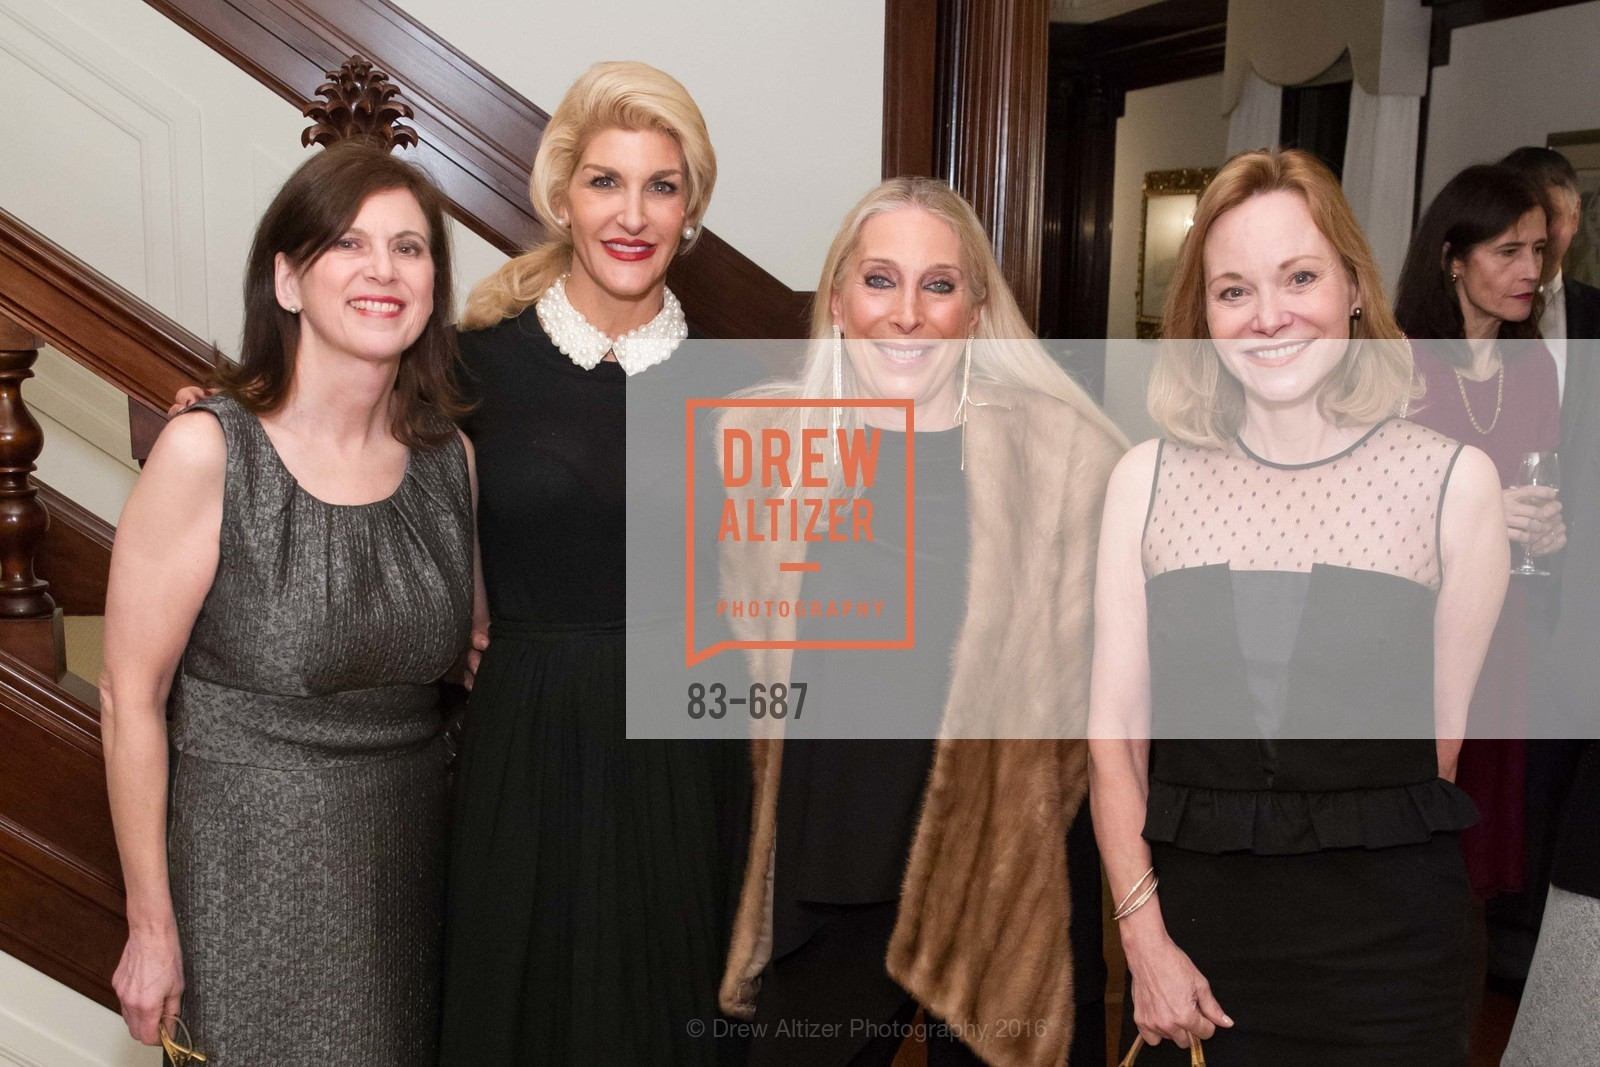 Beverley Siri-Borelli, Karen Caldwell, Betsy Linder, Janice Zakin, Benefactor Party for the 2016 Ballet Gala, Private Residence, January 14th, 2016,Drew Altizer, Drew Altizer Photography, full-service agency, private events, San Francisco photographer, photographer california